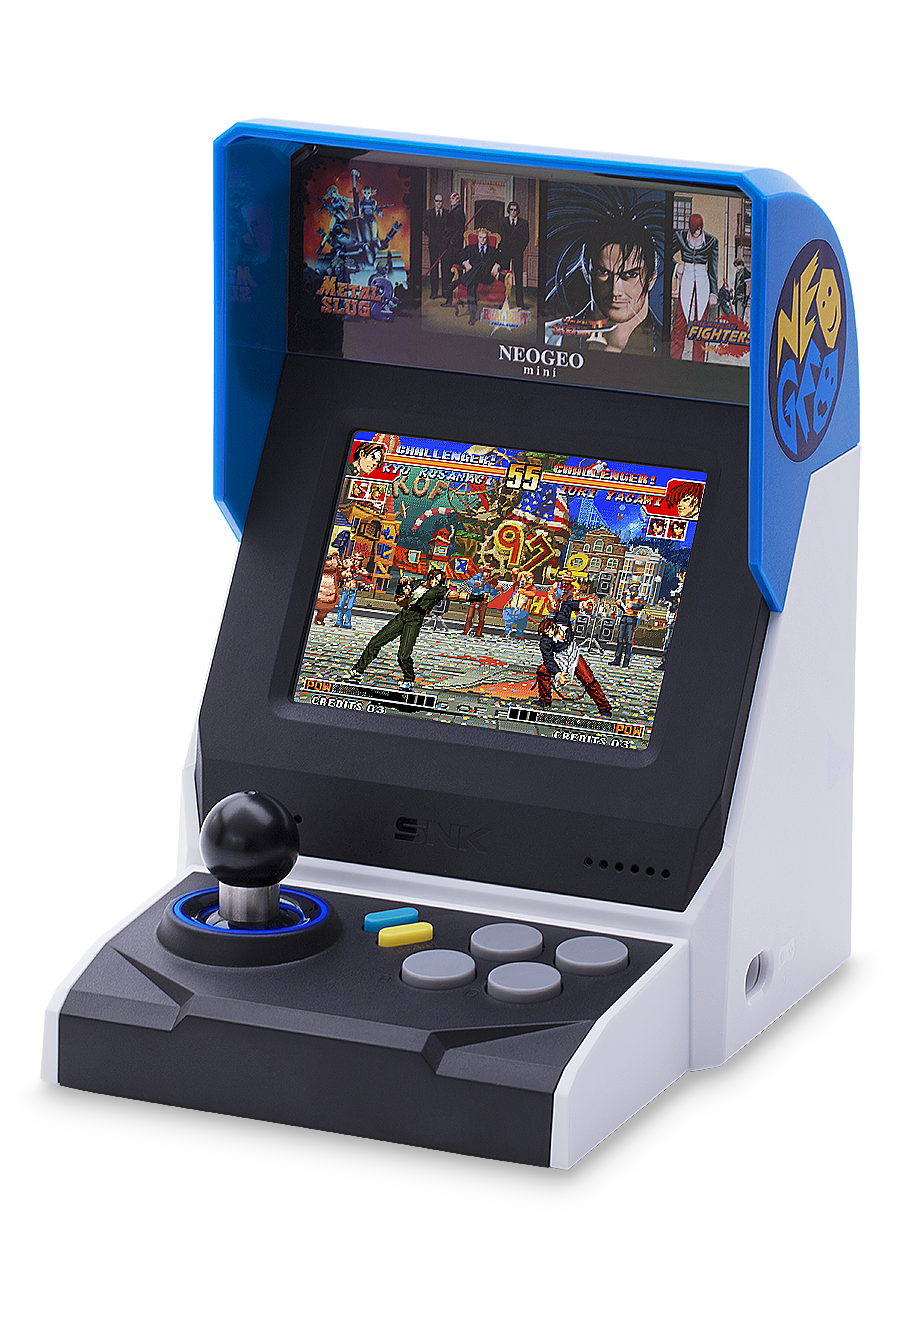 Neo Geo Mini Review | Trusted Reviews